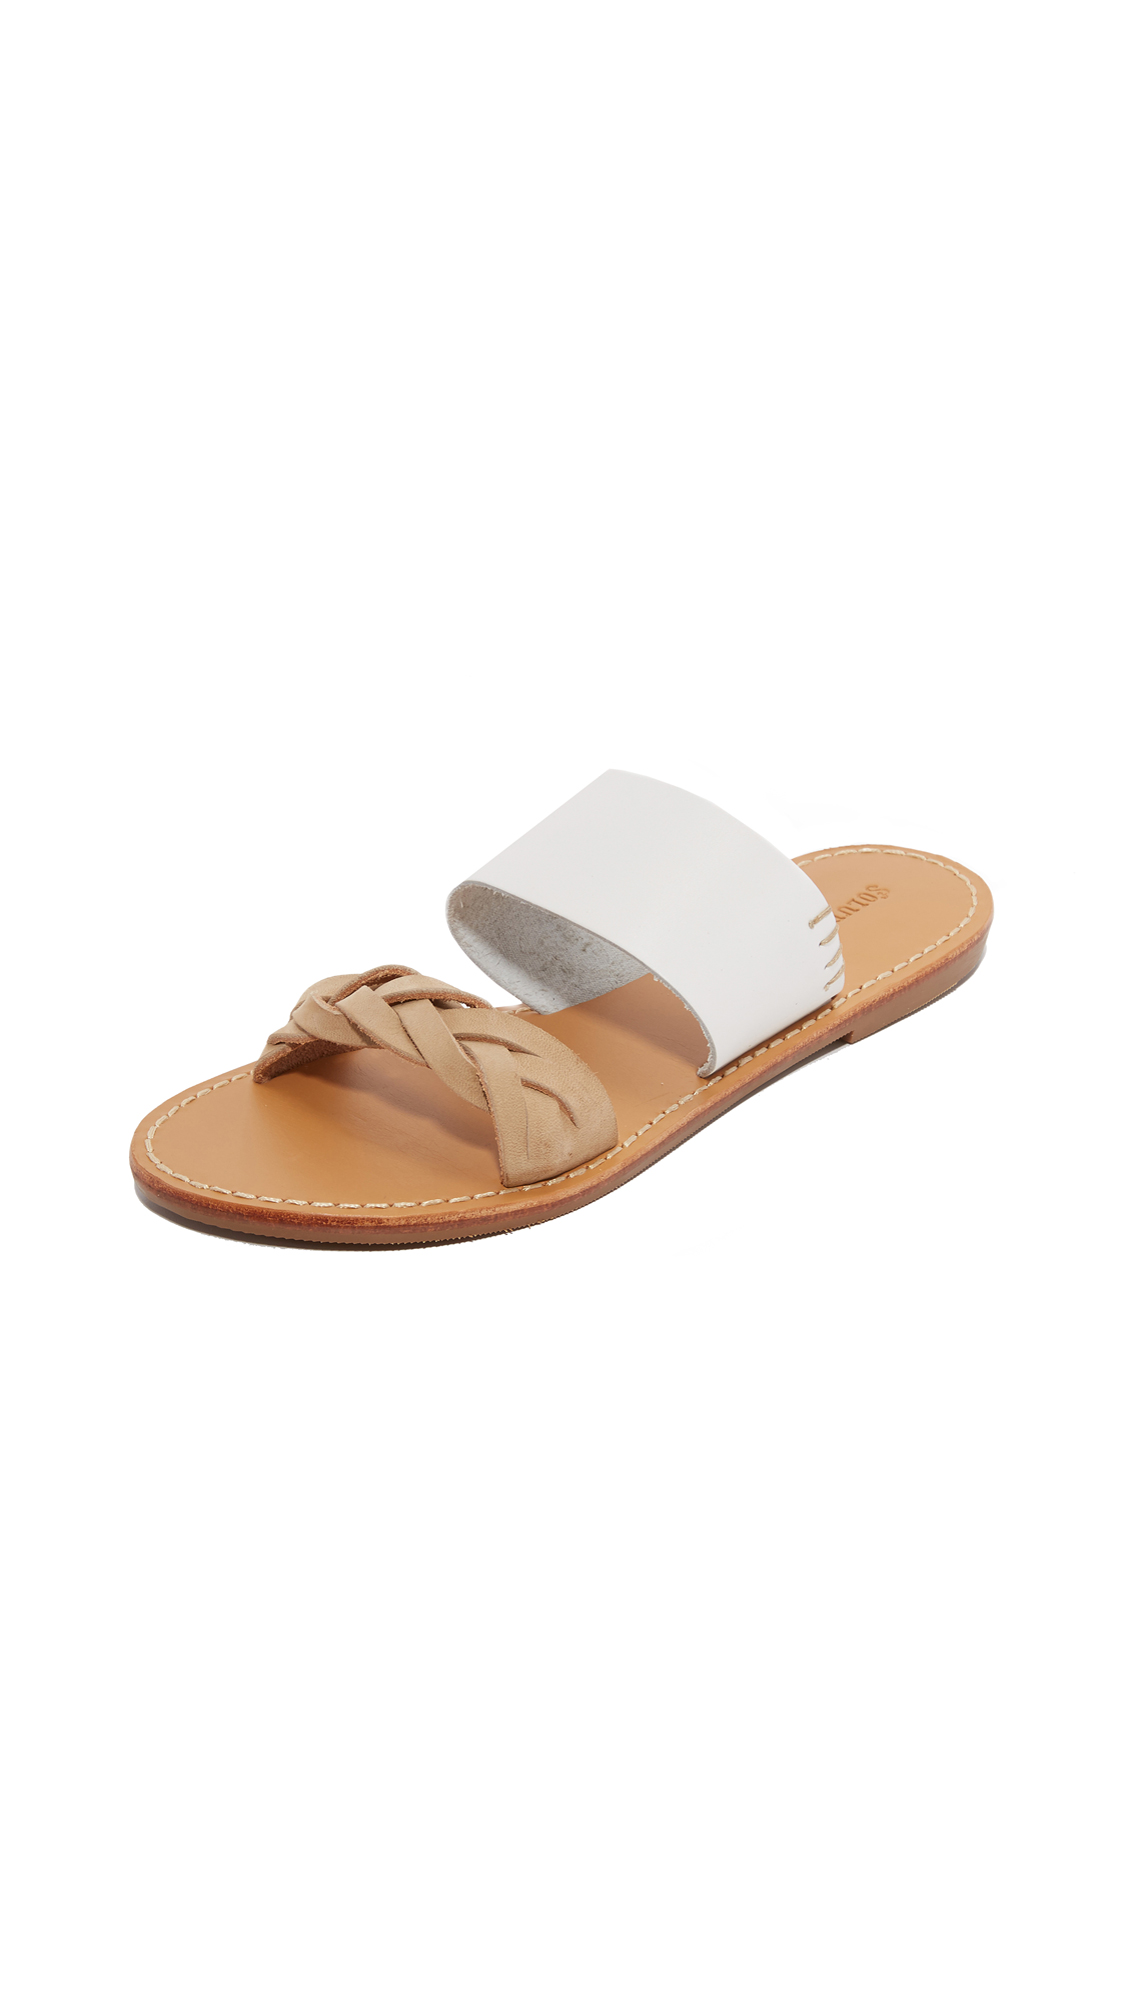 Soludos Braided Slide Sandals - White